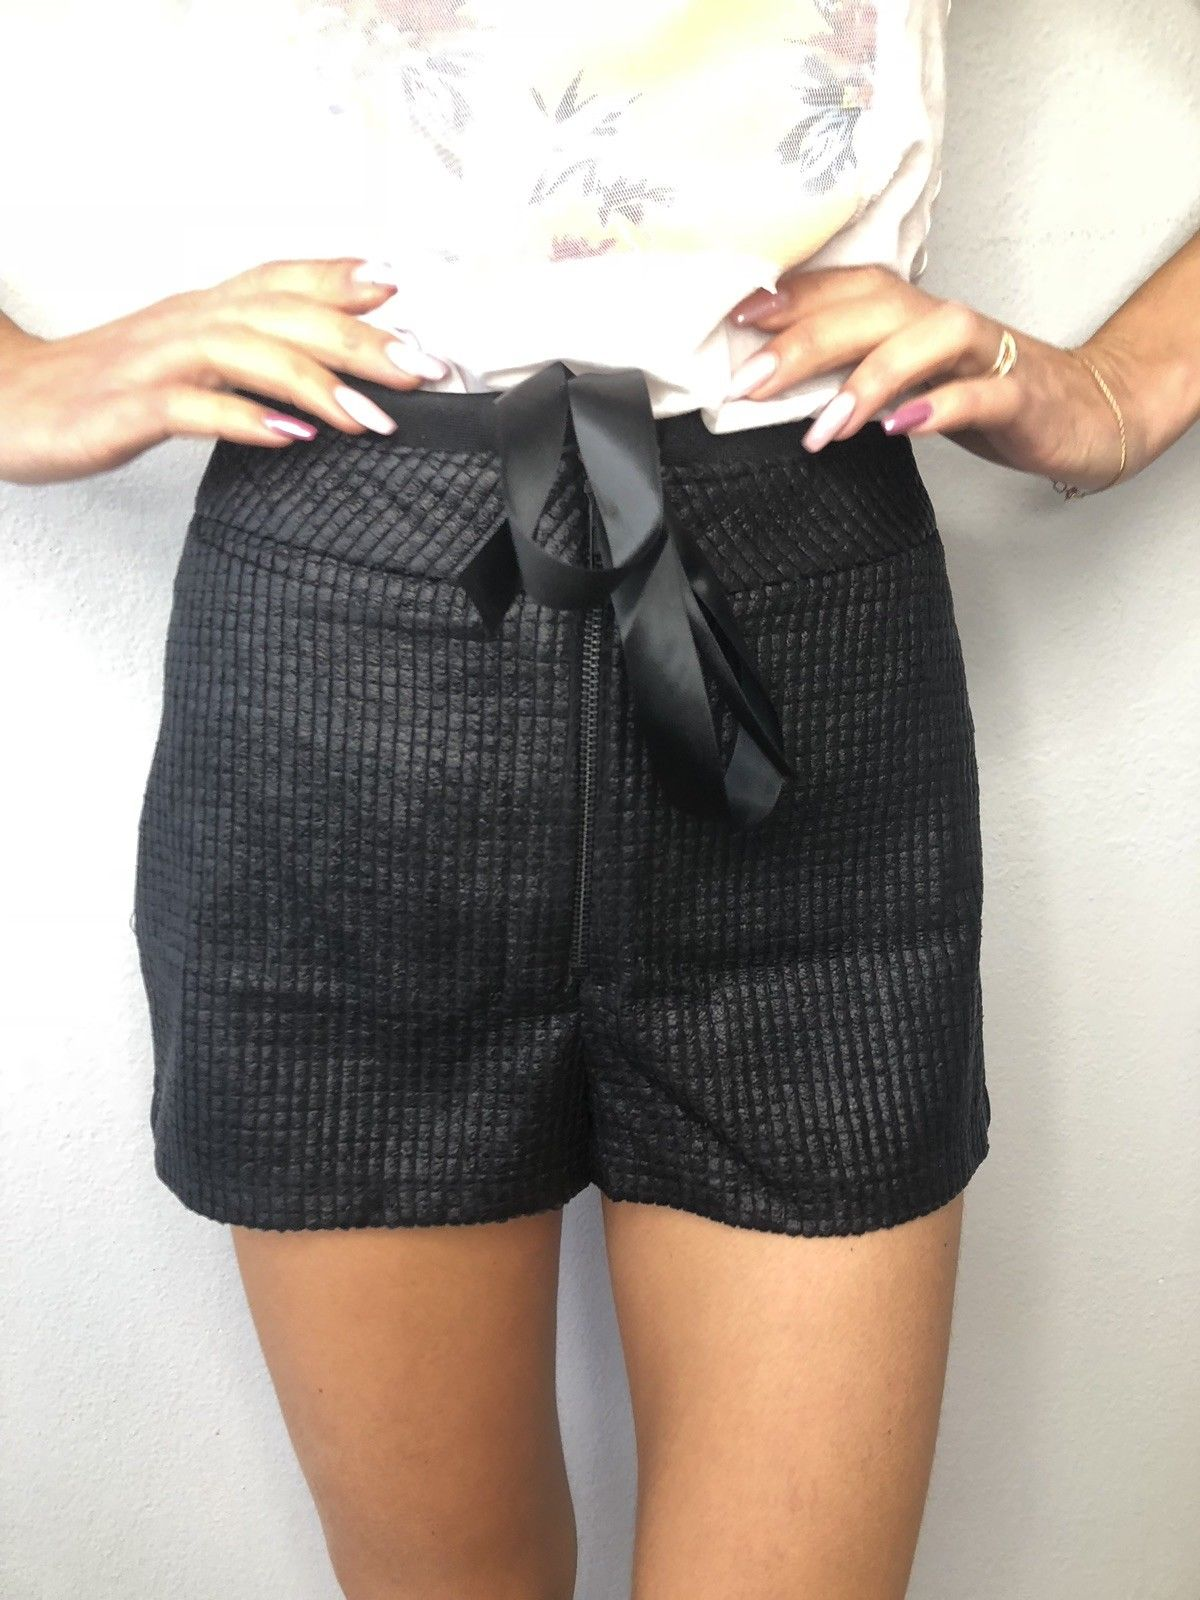 Buy Victoria Rainer High Waisted Shorts , Black Hand Made Shorts Women Size XS,S,M,L